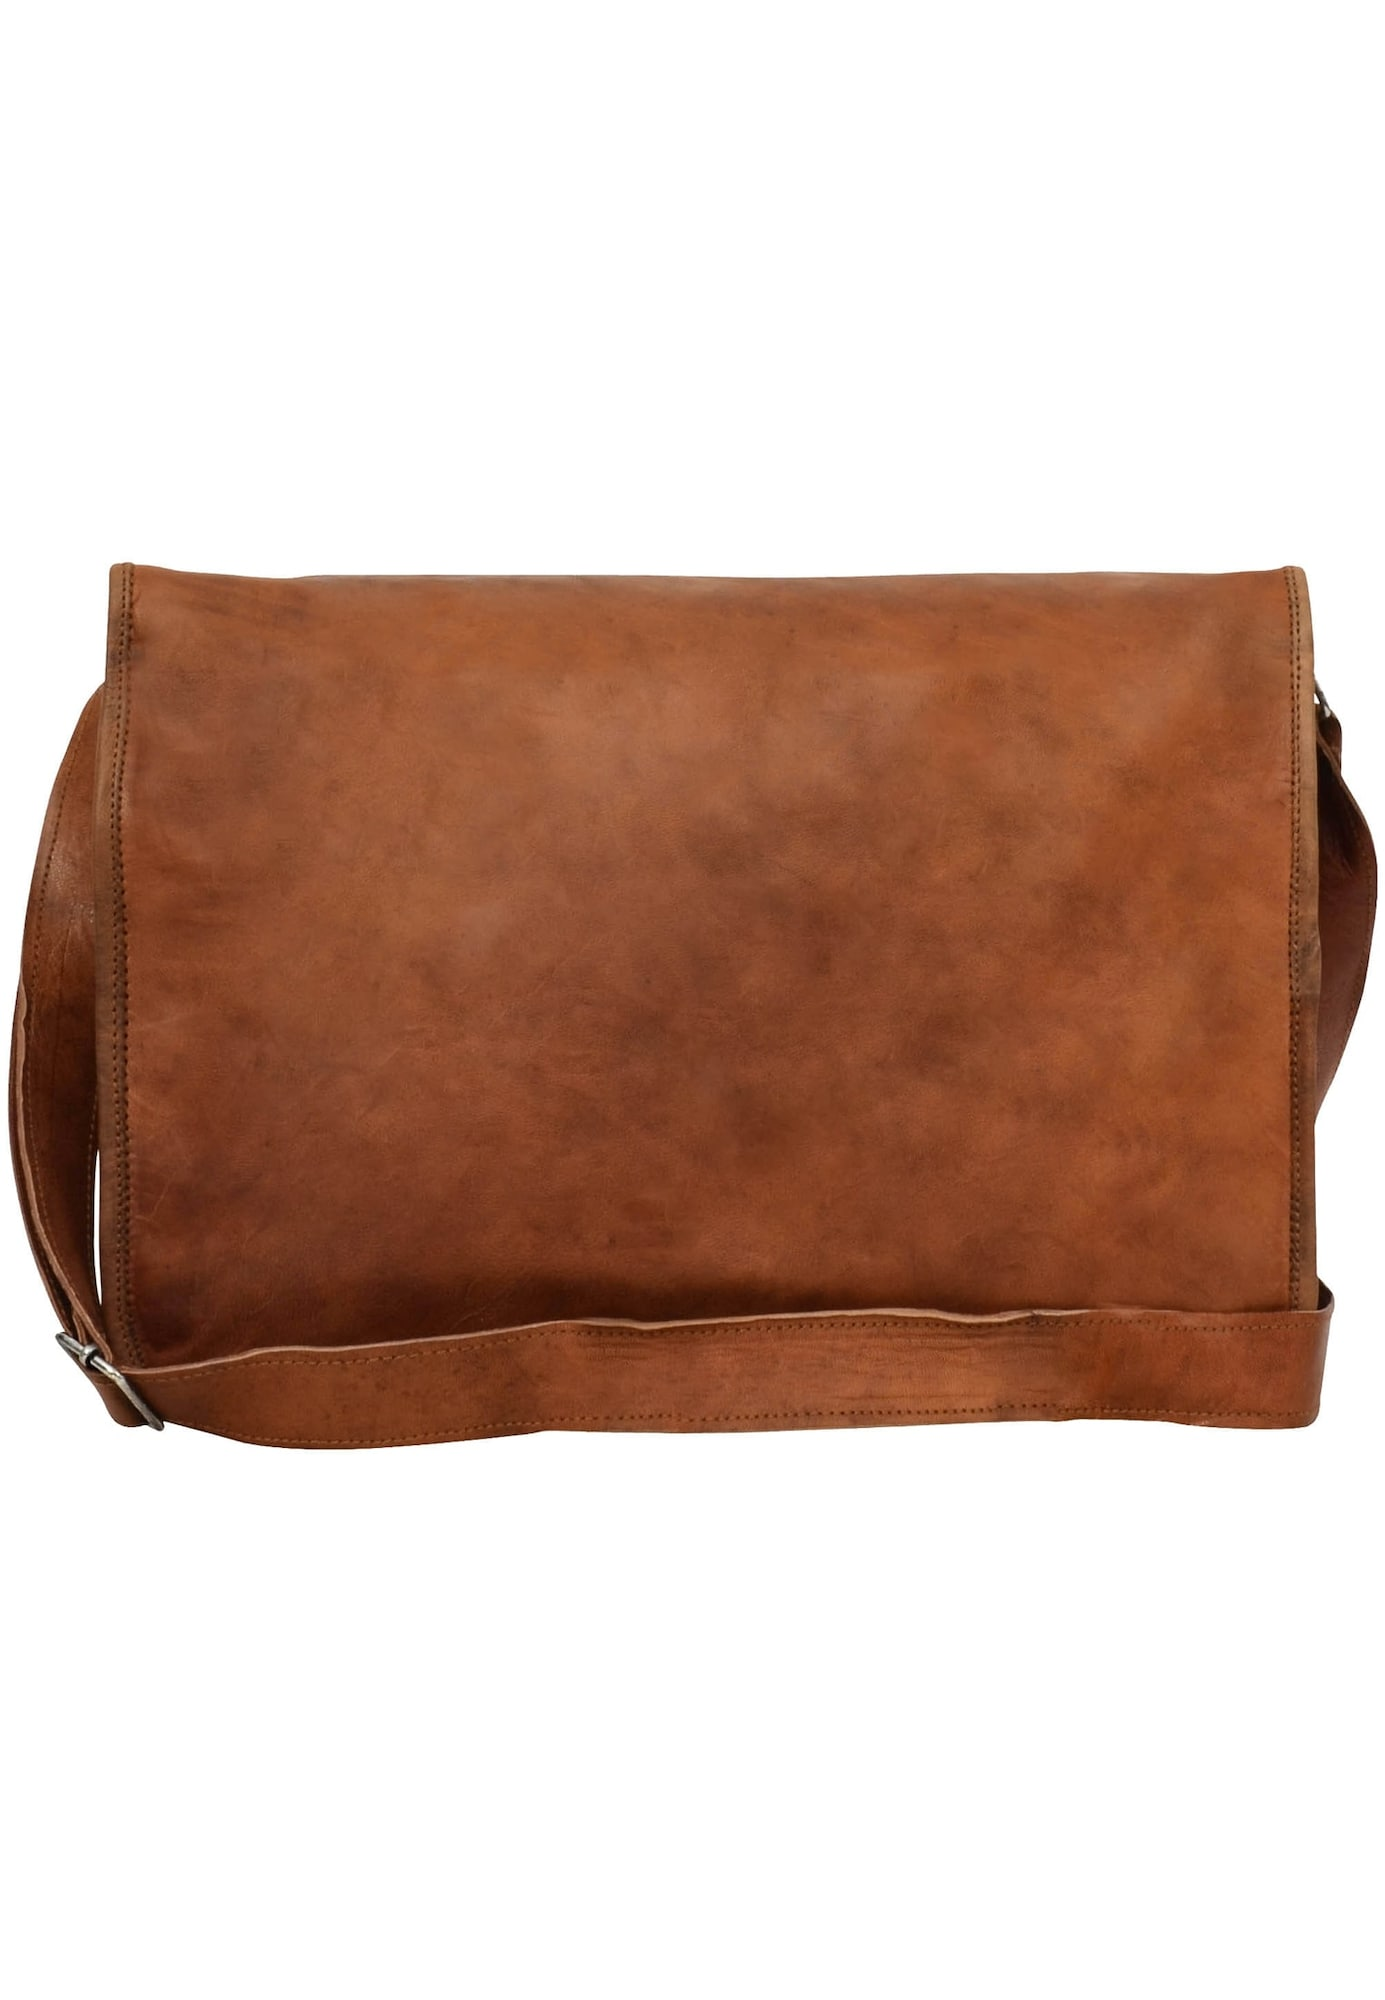 gusti leder - Messenger Bag ' Alex 15'